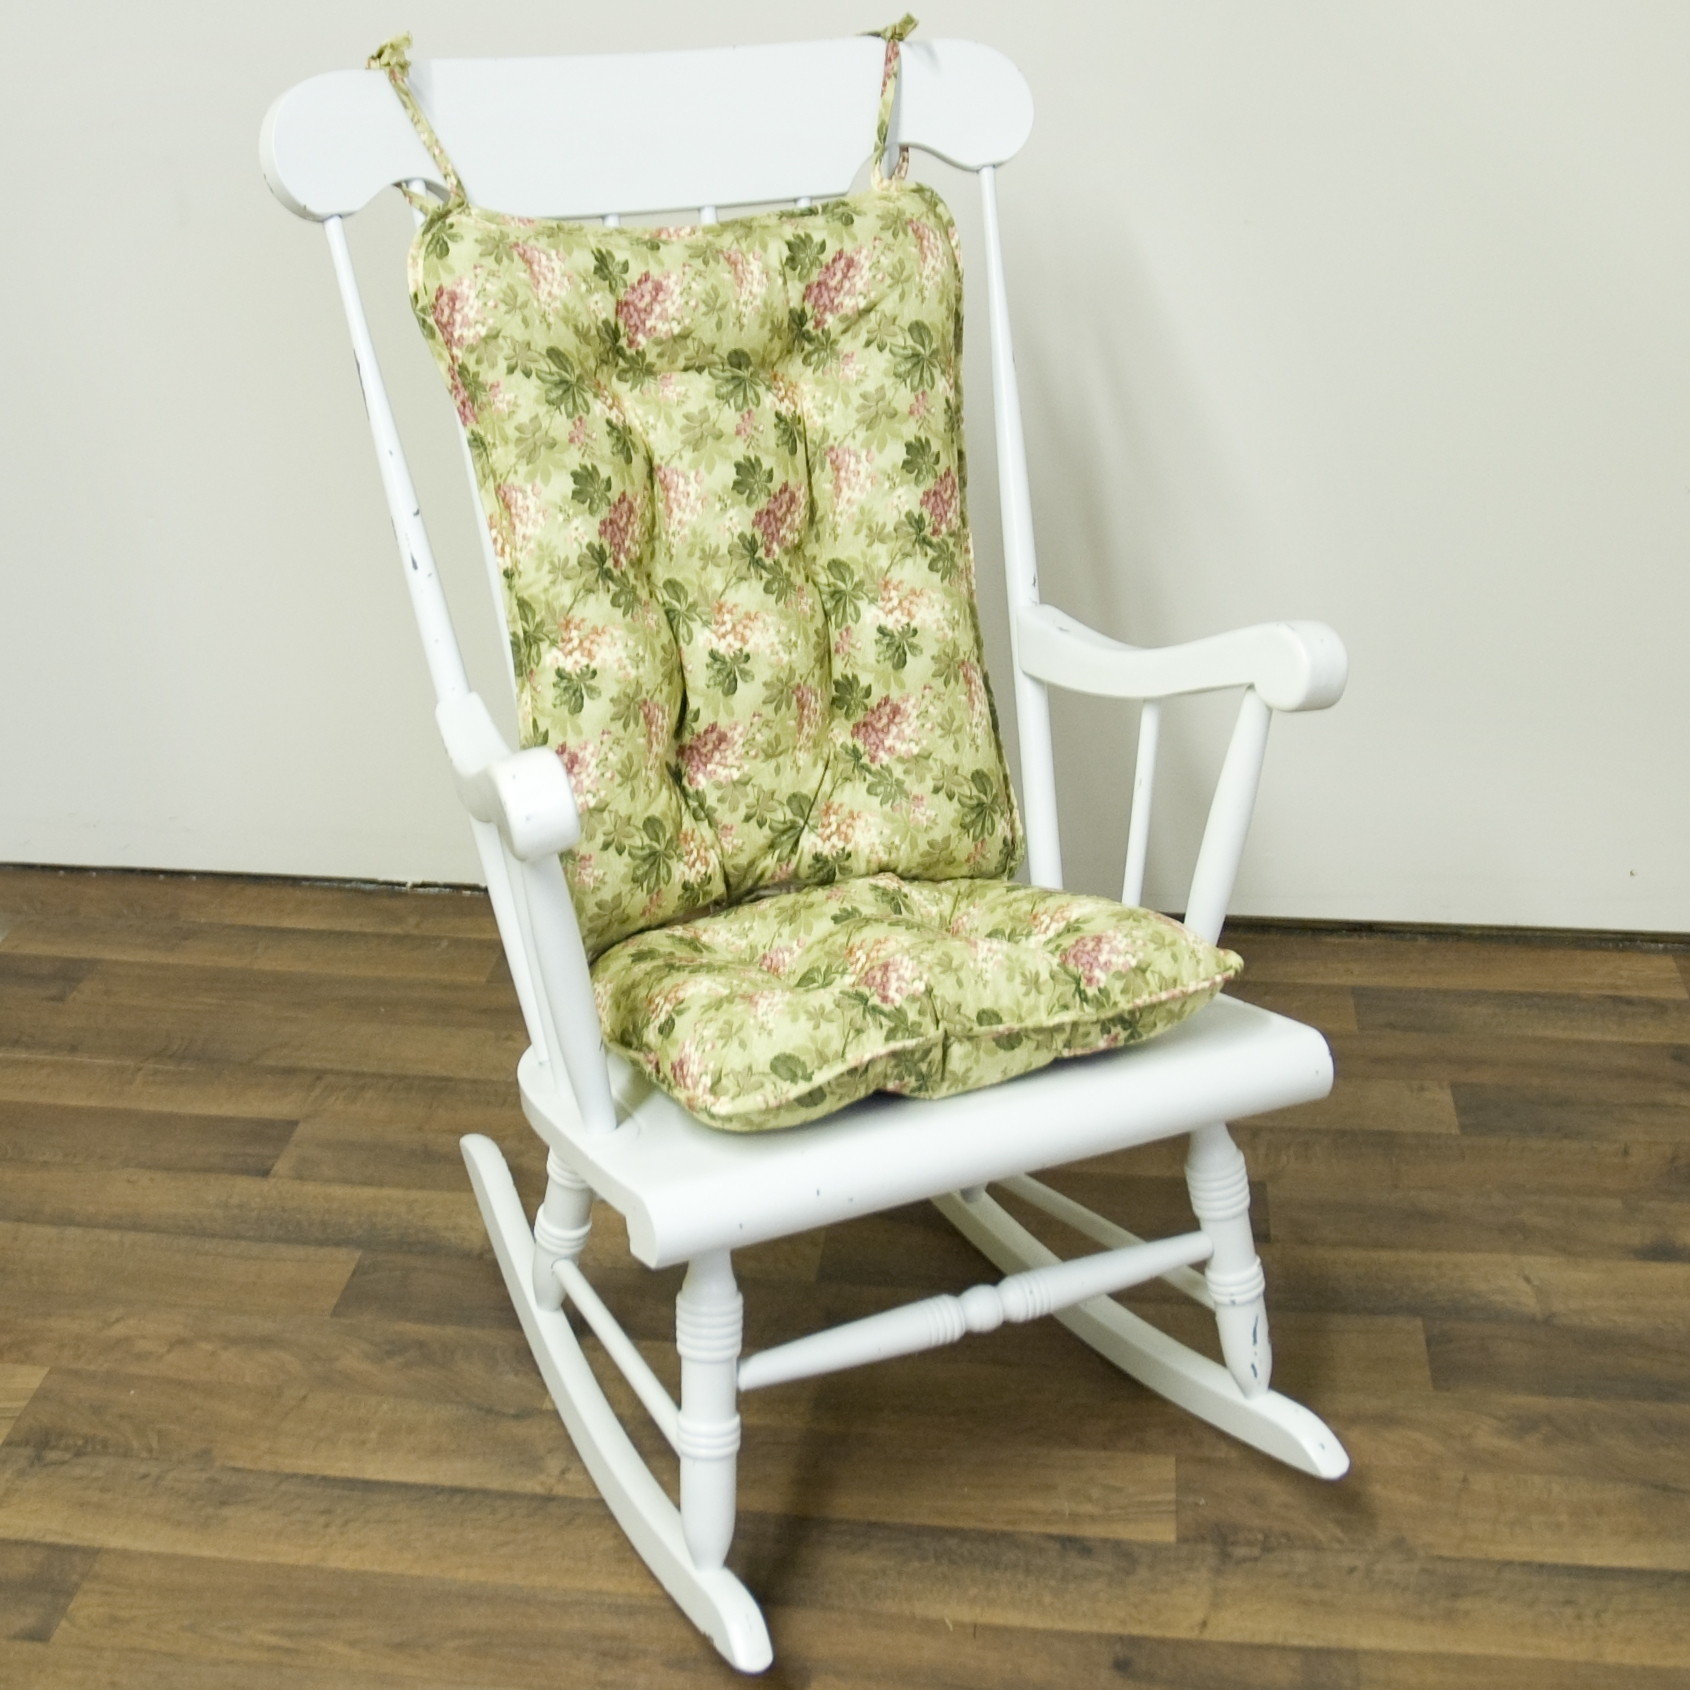 Outdoor Rocking Chair Cushions Flower : Beautiful Outdoor Rocking Throughout Most Up To Date Rocking Chair Cushions For Outdoor (View 11 of 20)